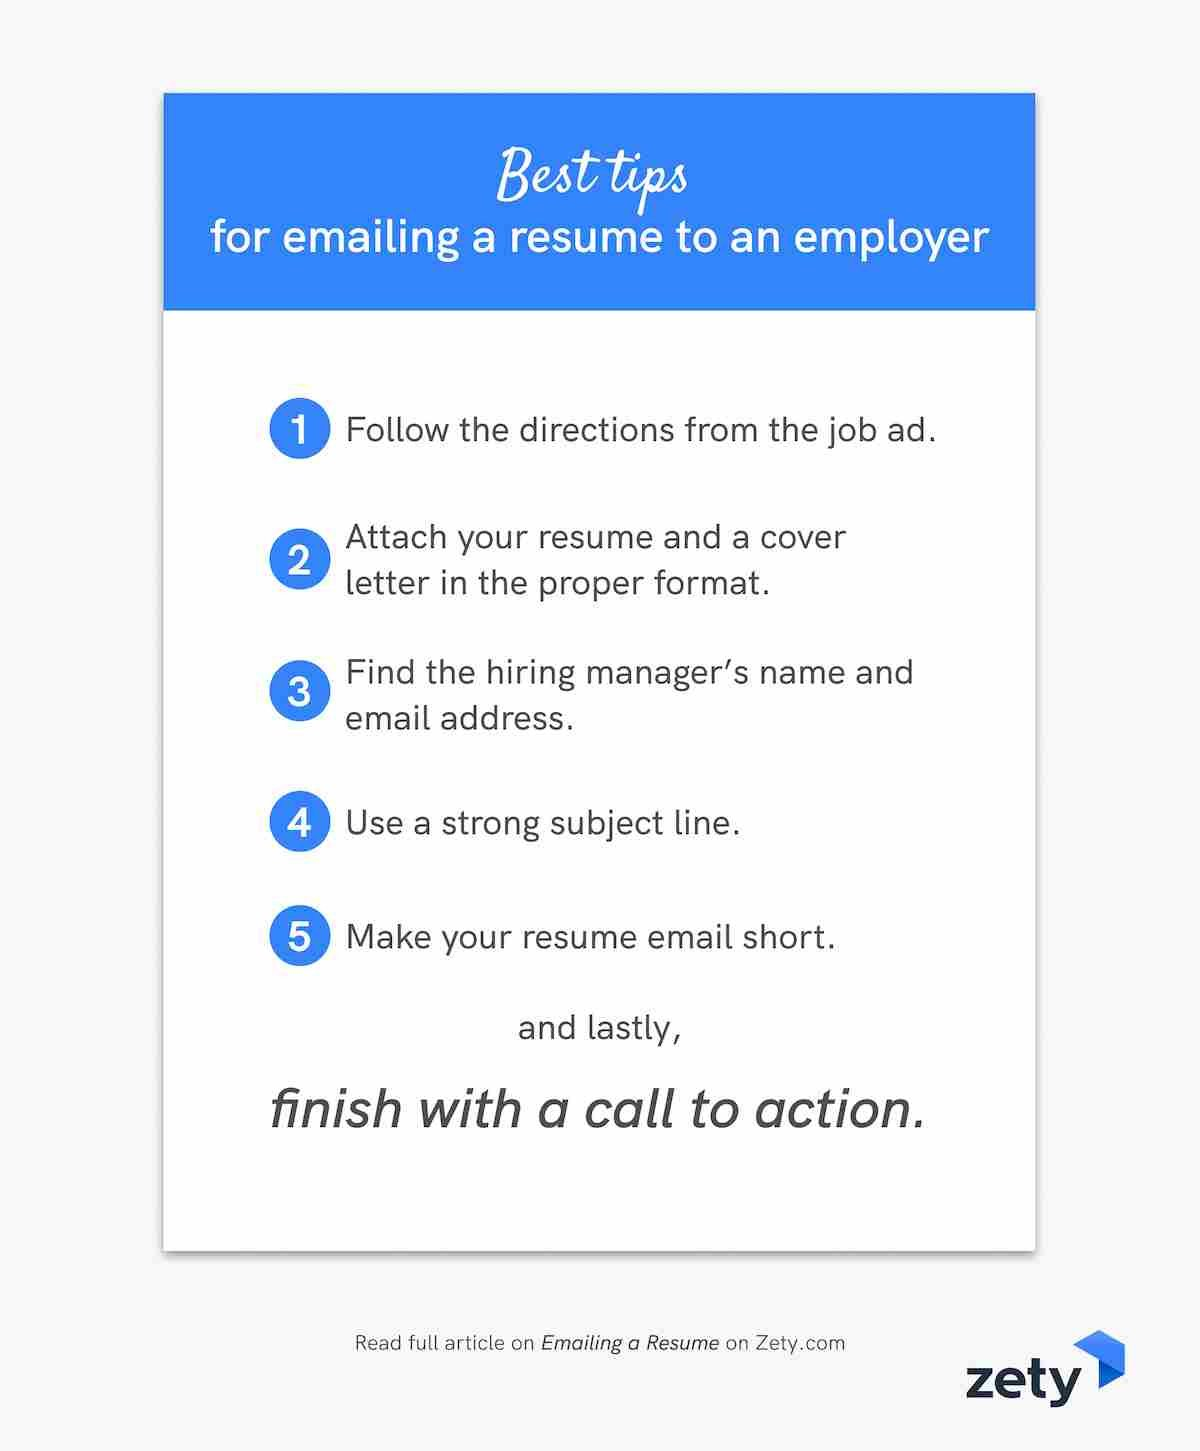 emailing resume job application email samples for submission the best tips to an employer Resume Email For Resume Submission Samples